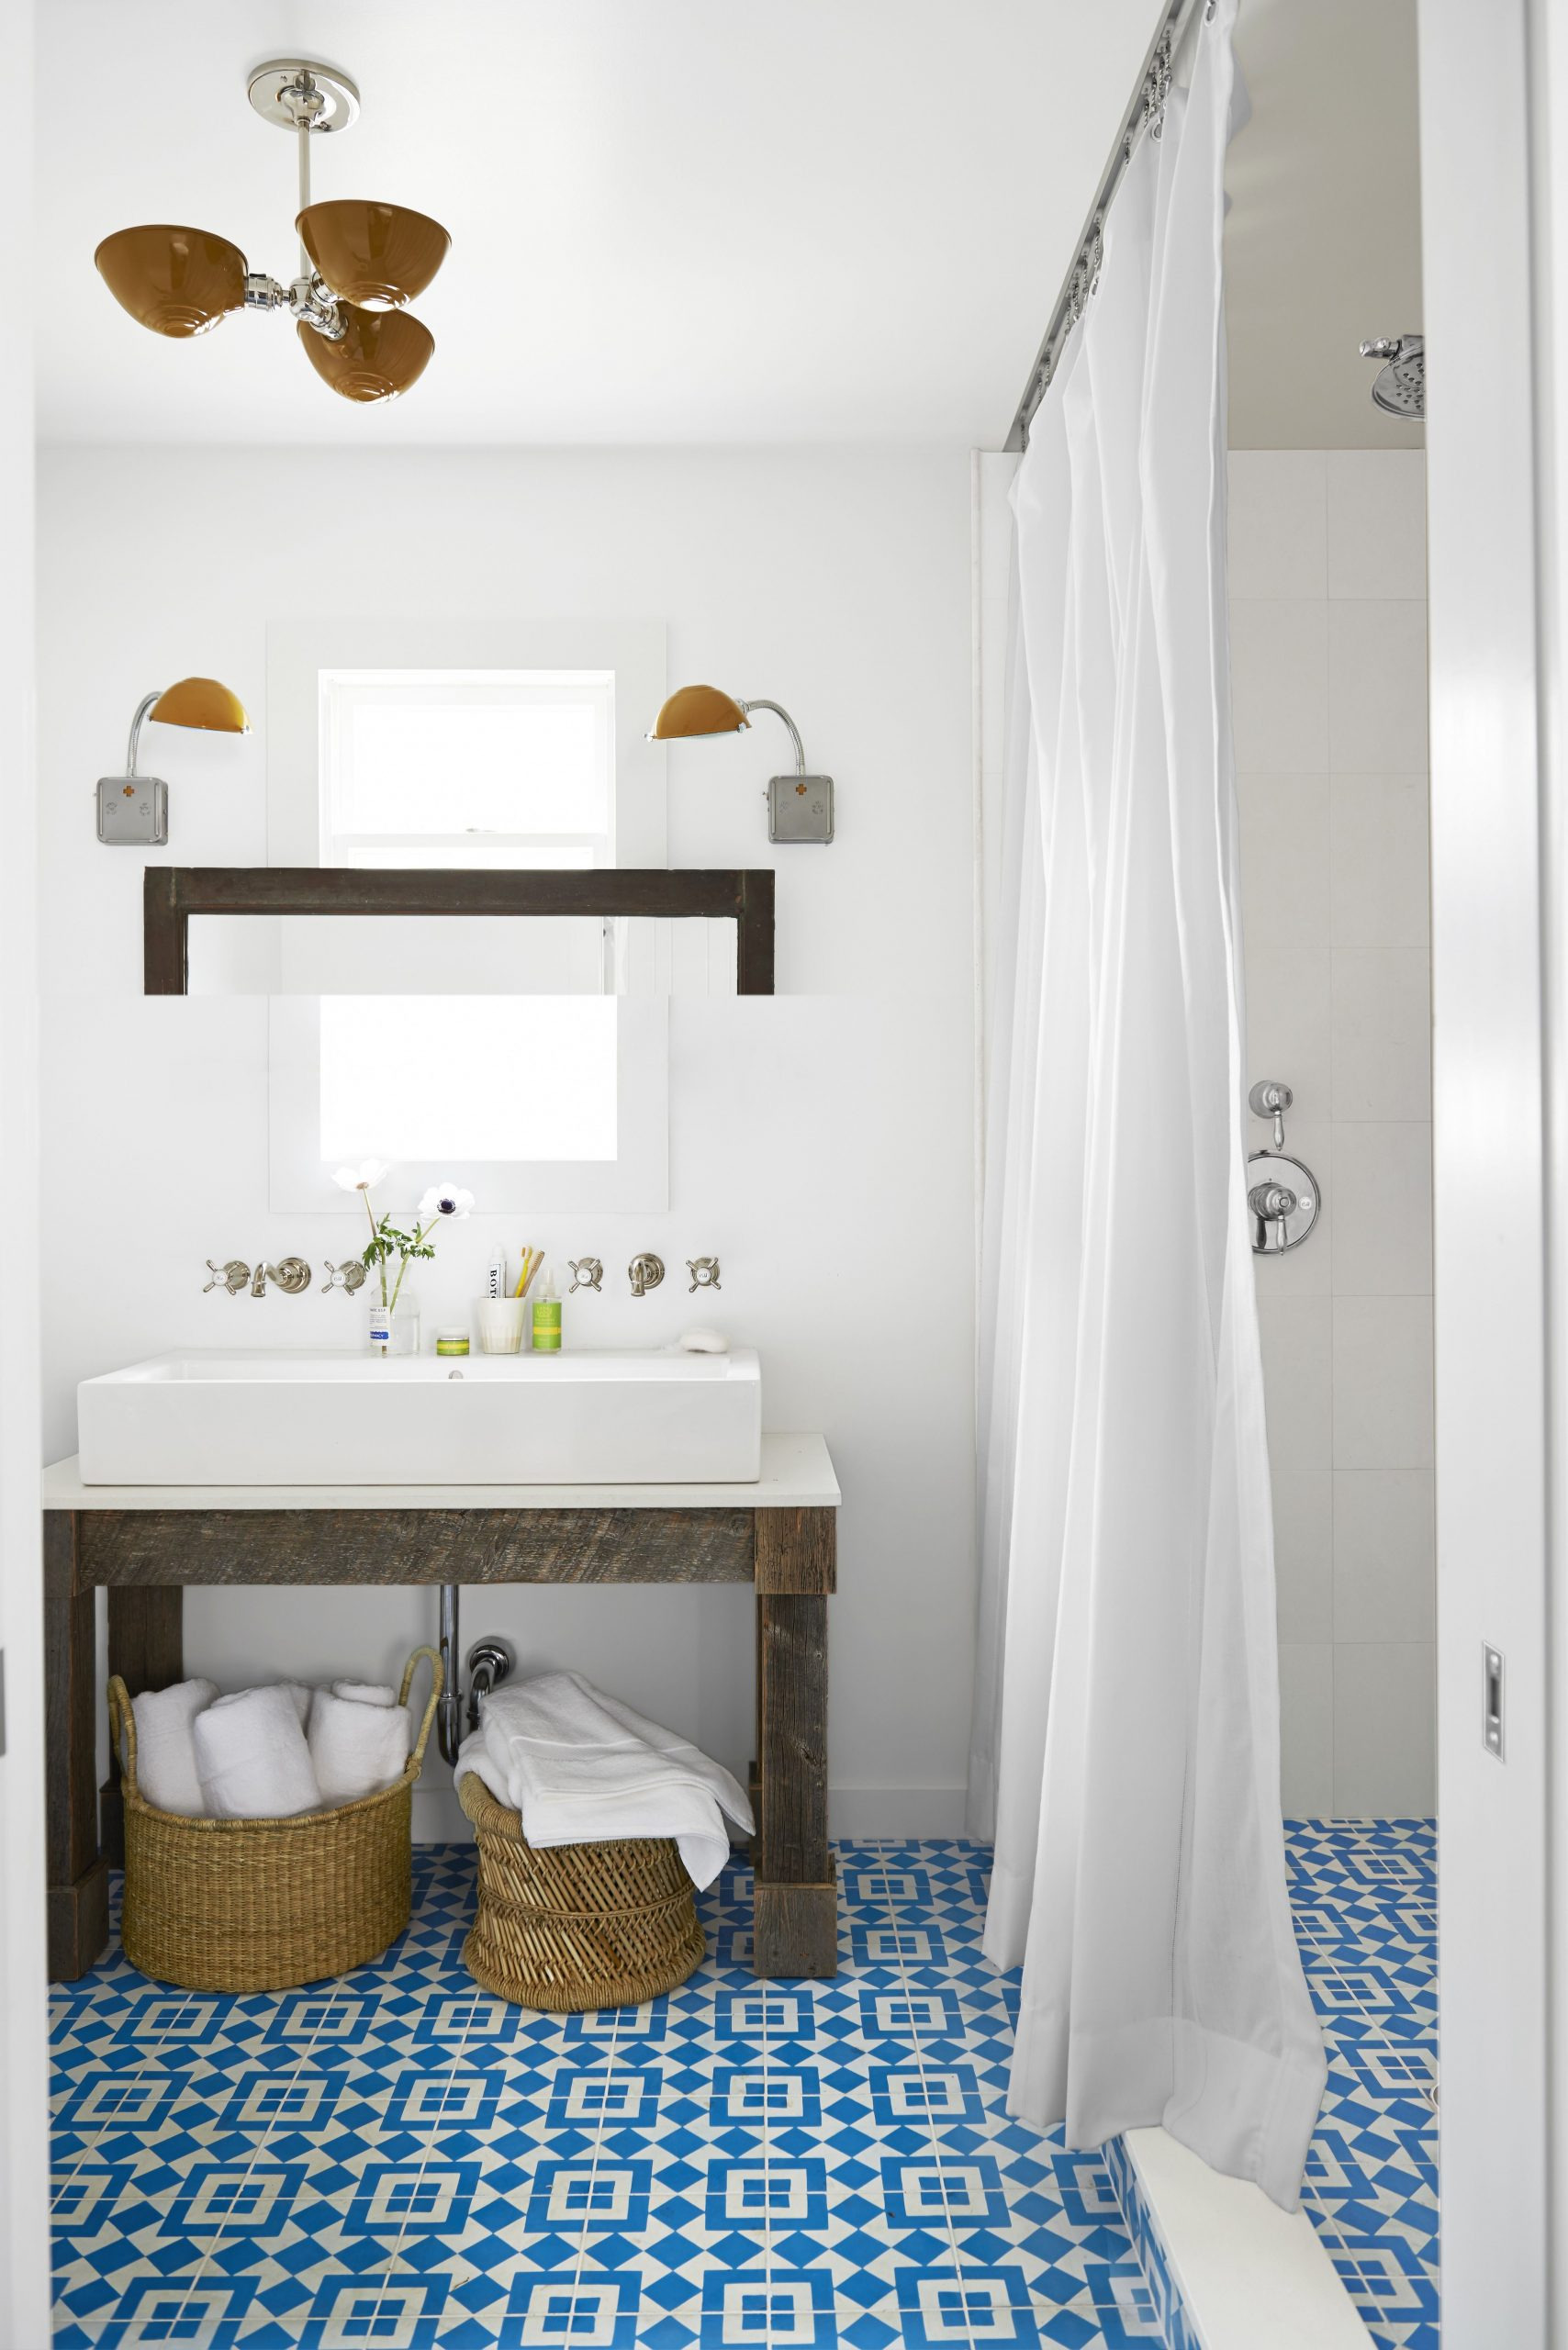 designing small bathroom ideas decorating images india walls bathrooms pinterest pictures of decor scaled